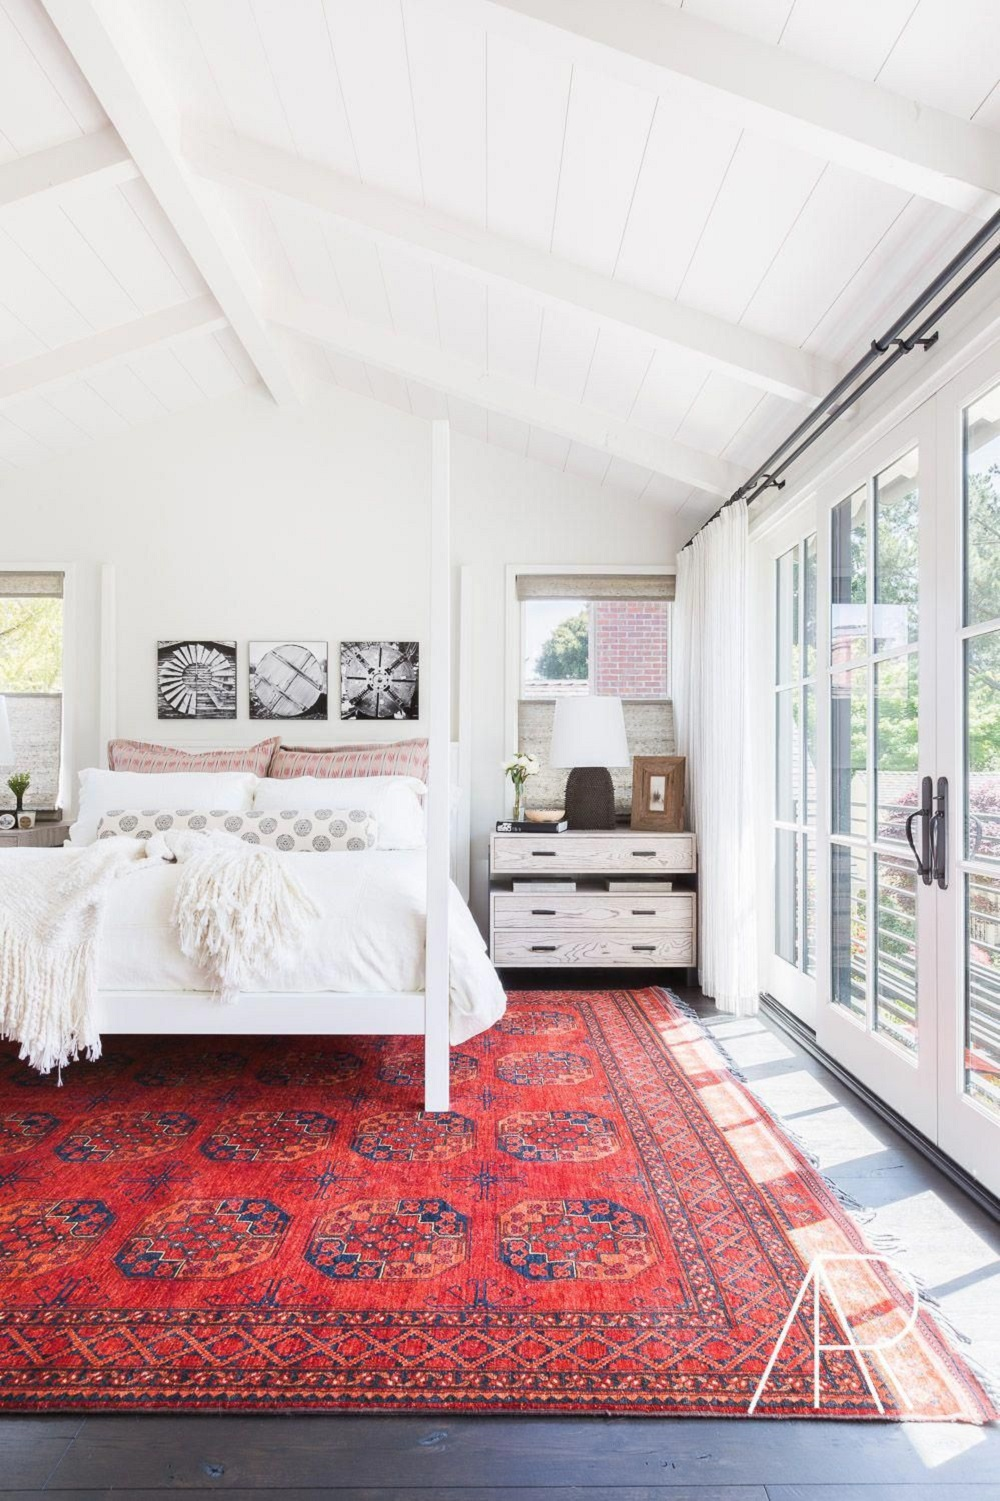 f13-1 How to Create a Feng Shui Bedroom Layout Without Much Effort